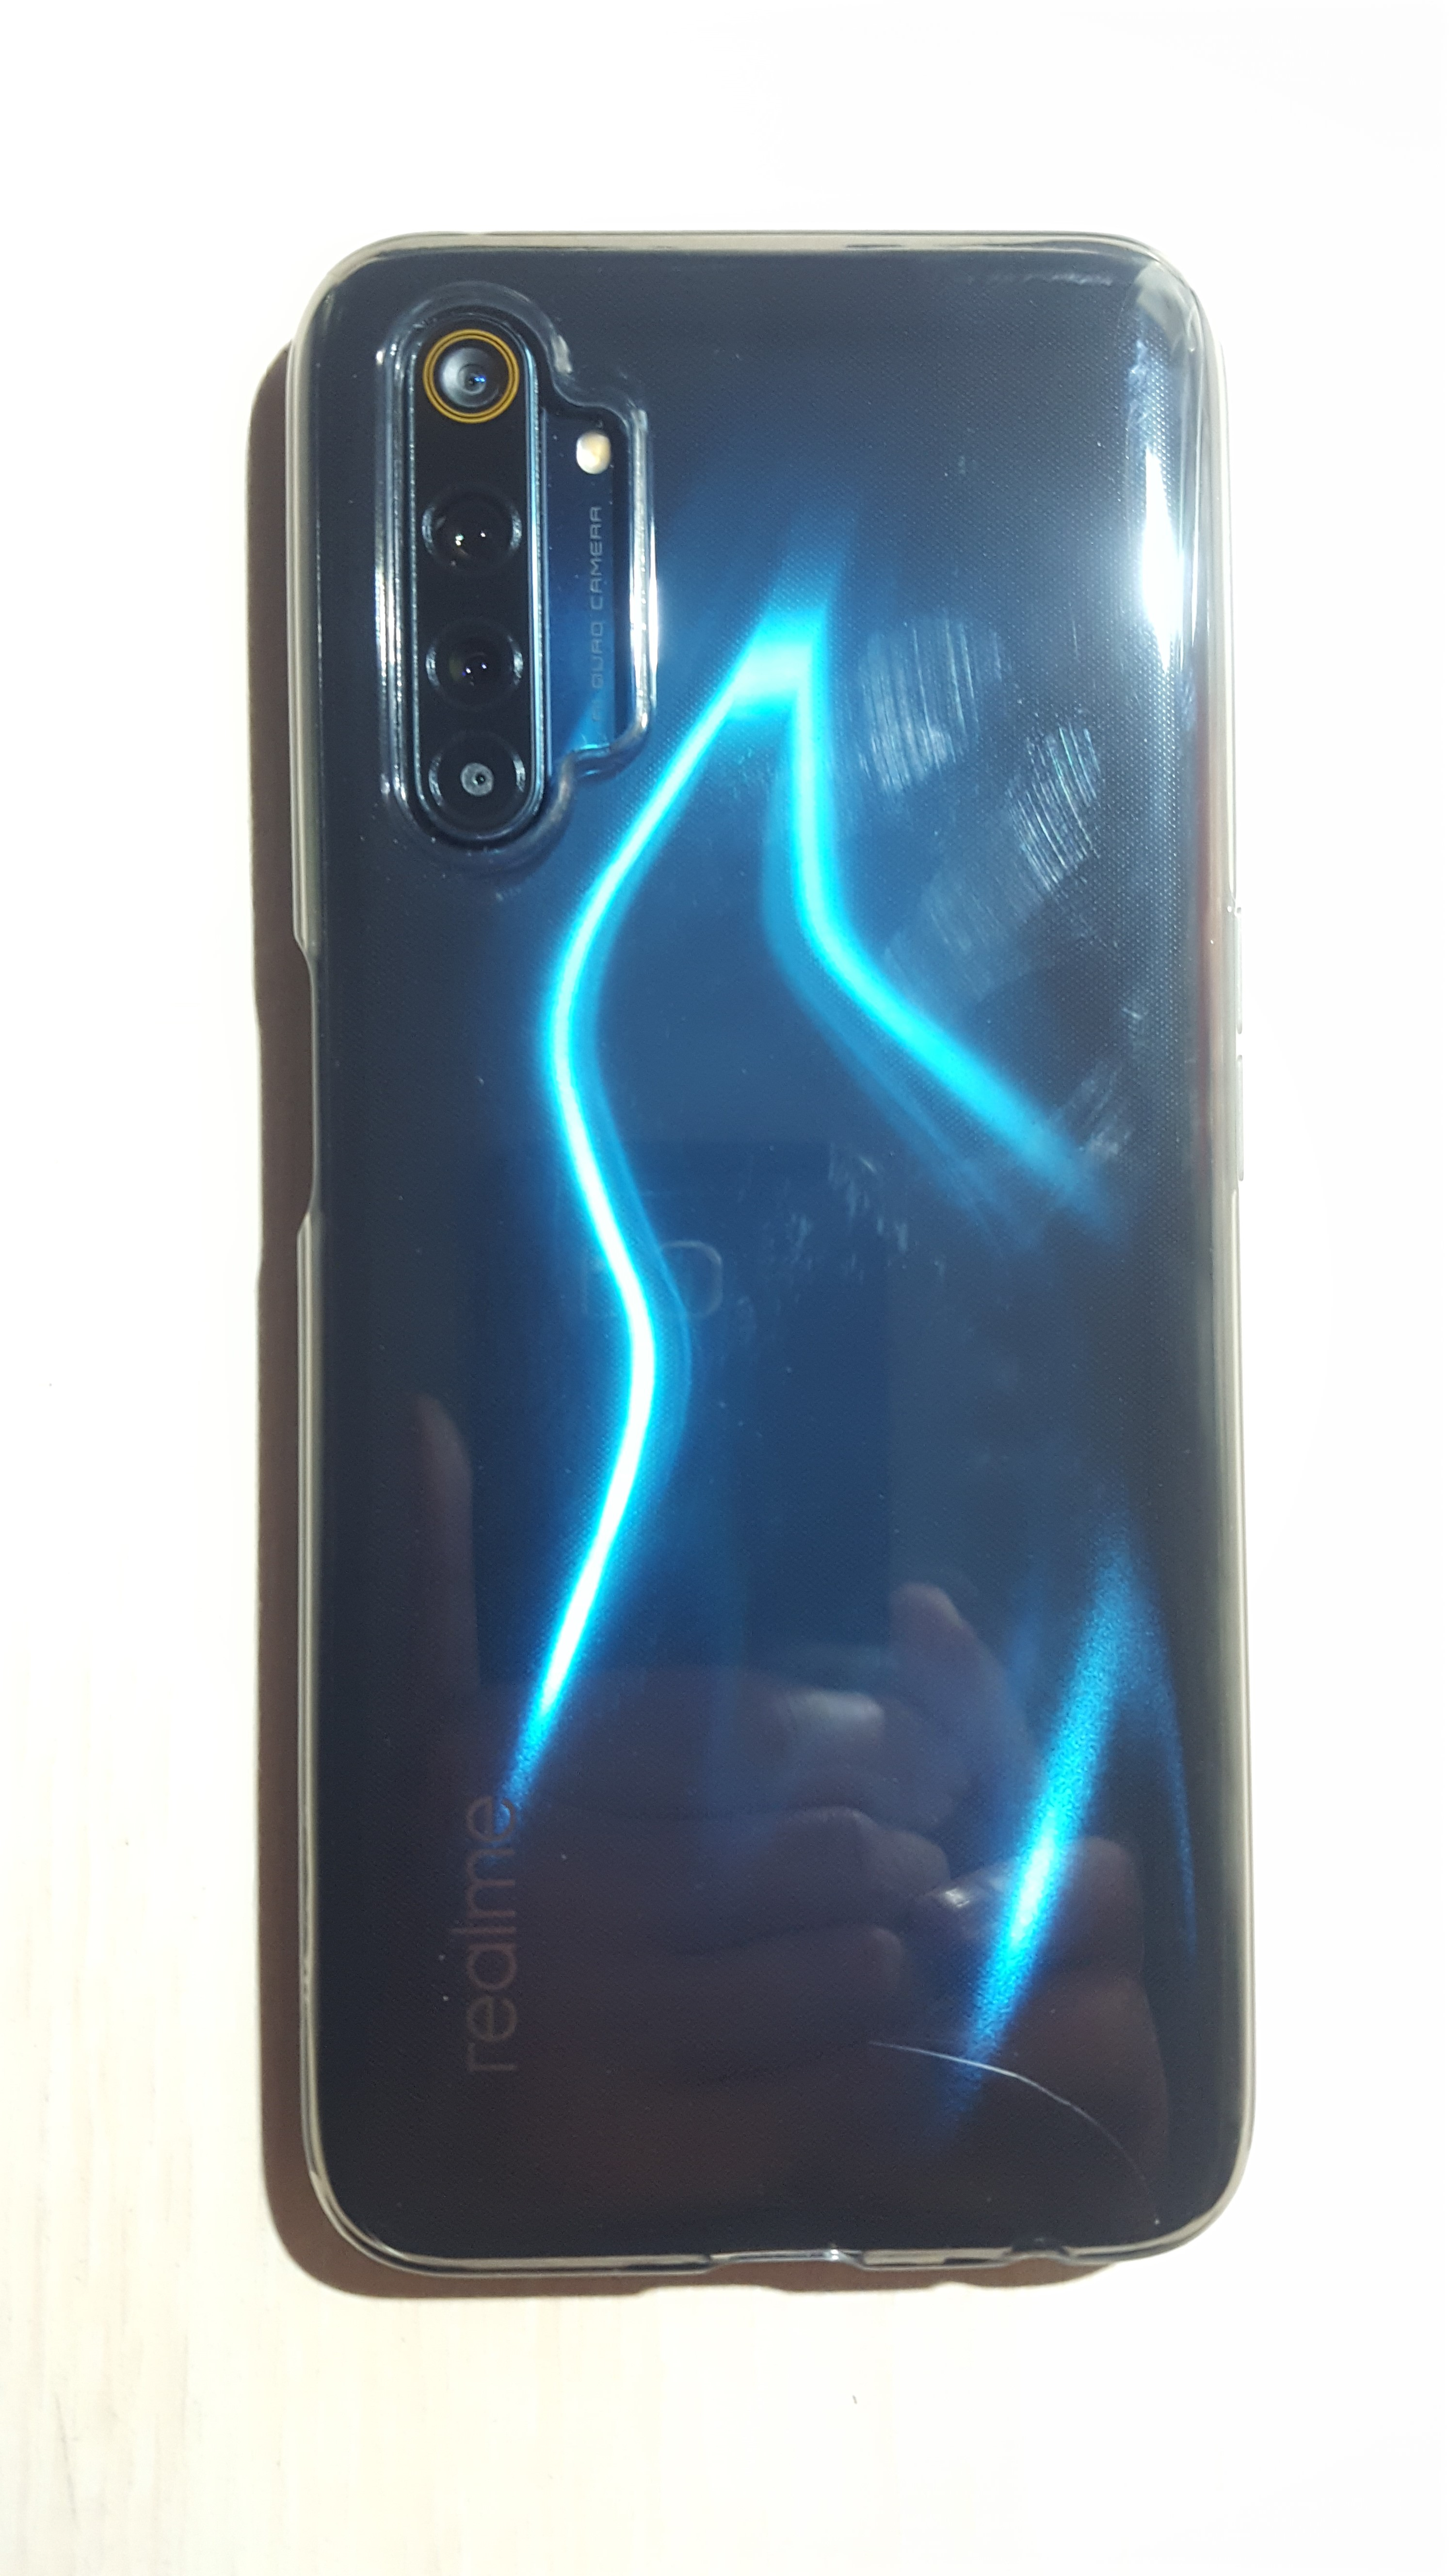 Smartphone realme 6 Pro 8 + 128 GB, [superprice 18992₽ only from 13 to 16 July], snapdragon 720g, Russian warranty [pesochek2000]|Cellphones|   - AliExpress